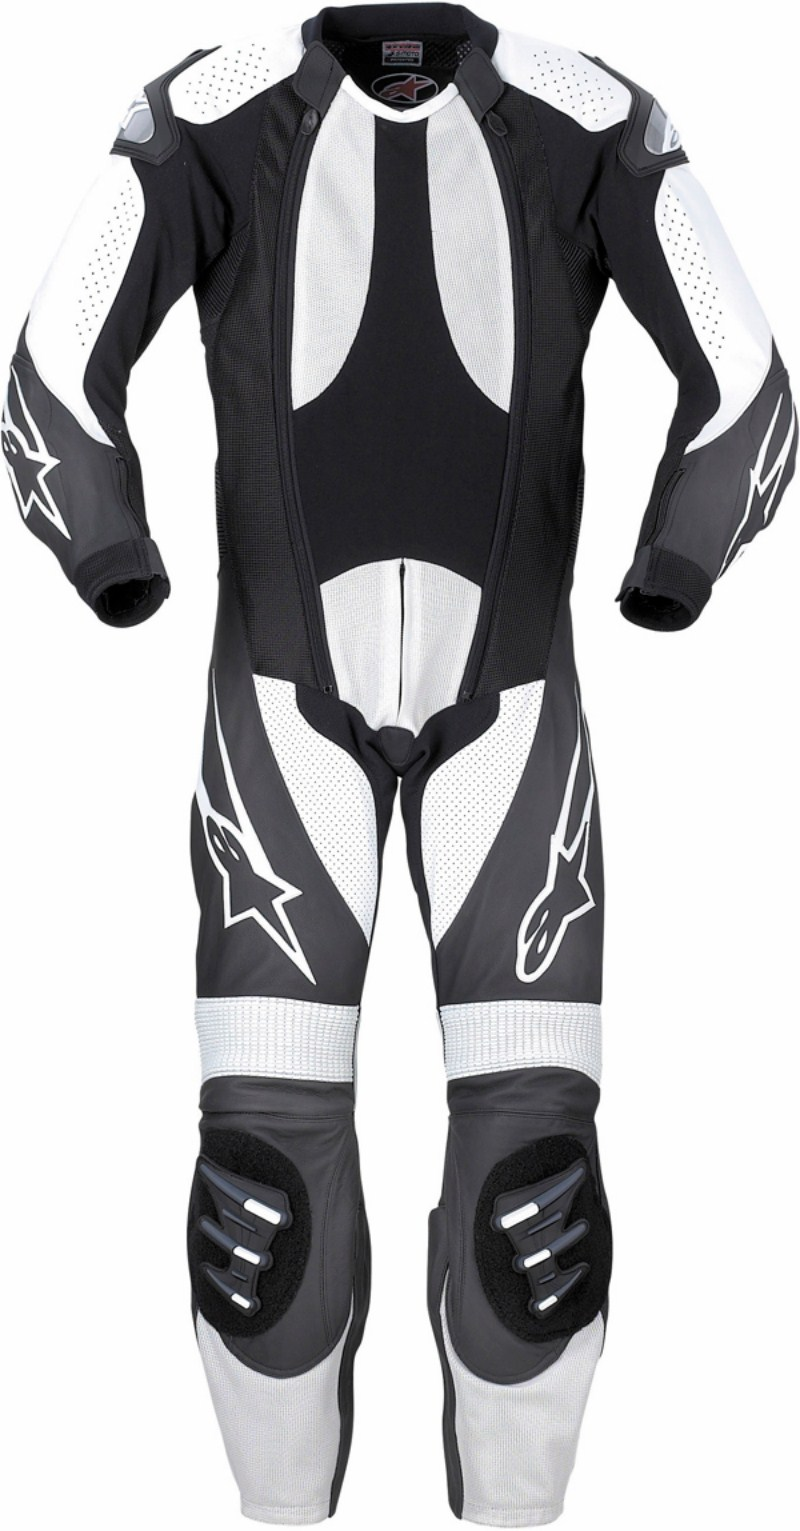 Alpinestars S-1 Supermoto leather suit black-gray